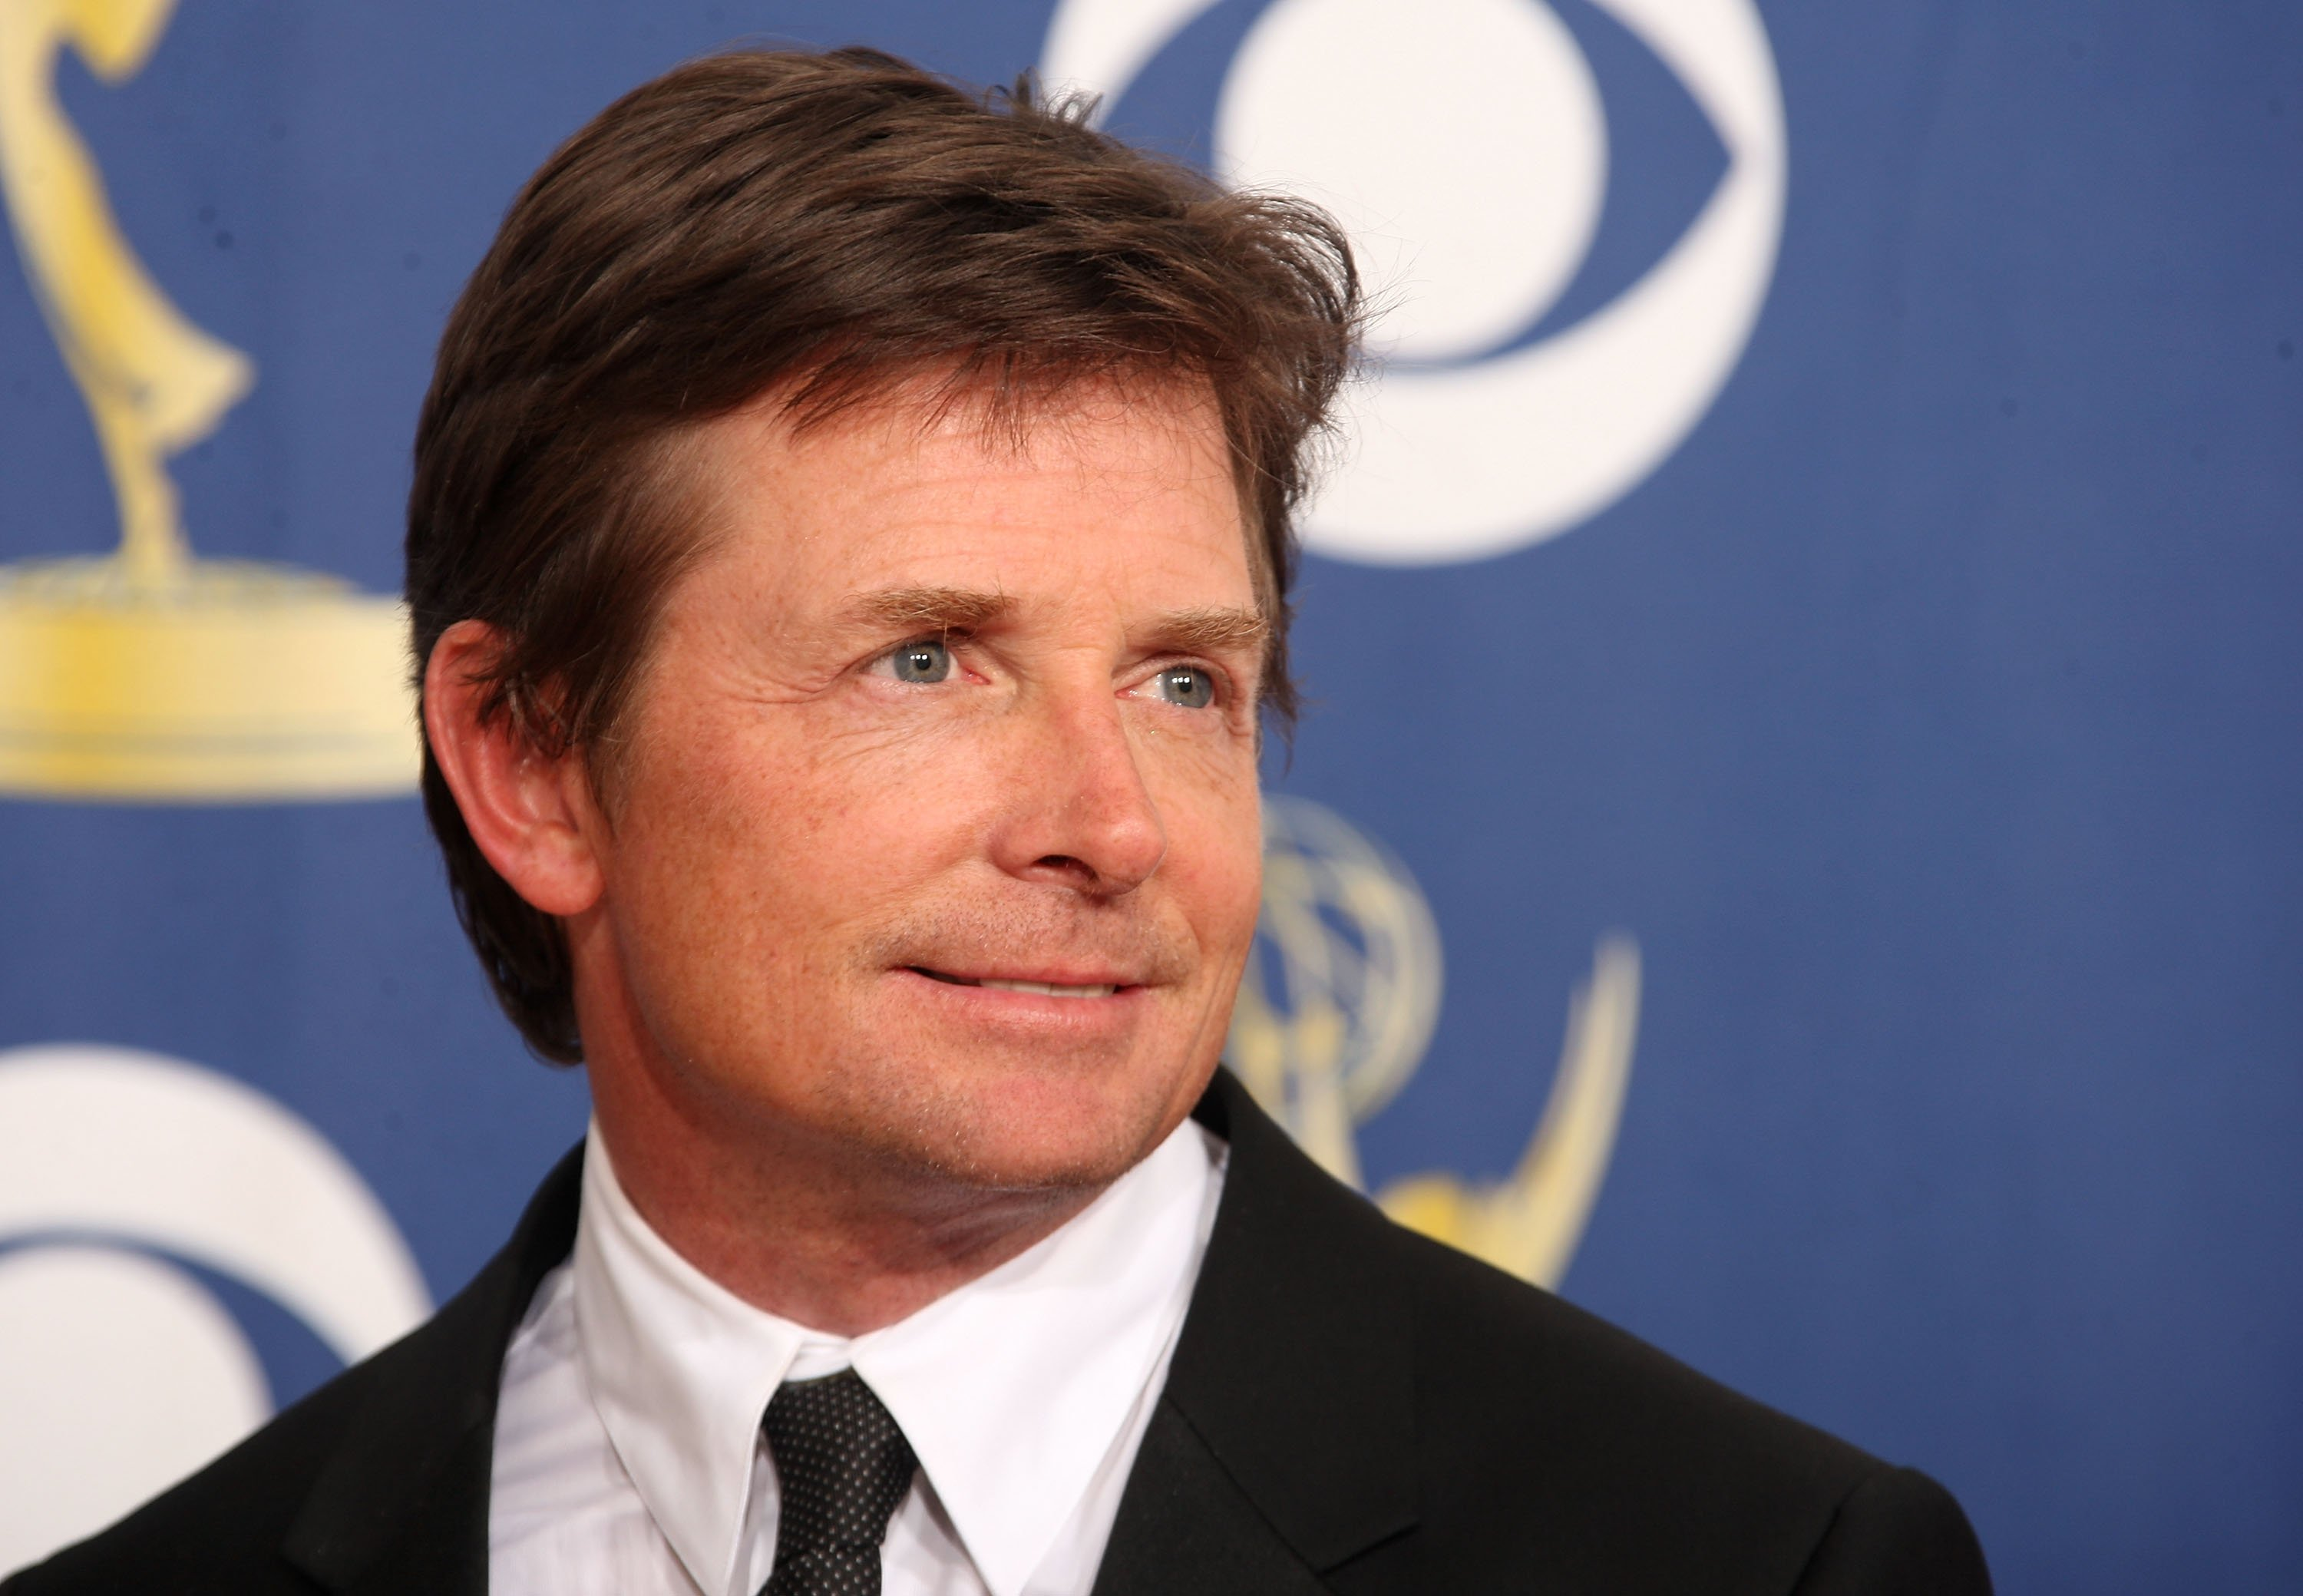 Michael J. Fox poses in the press room at the 61st Primetime Emmy Awards held at the Nokia Theatre on September 20, 2009.   Source: Getty Images